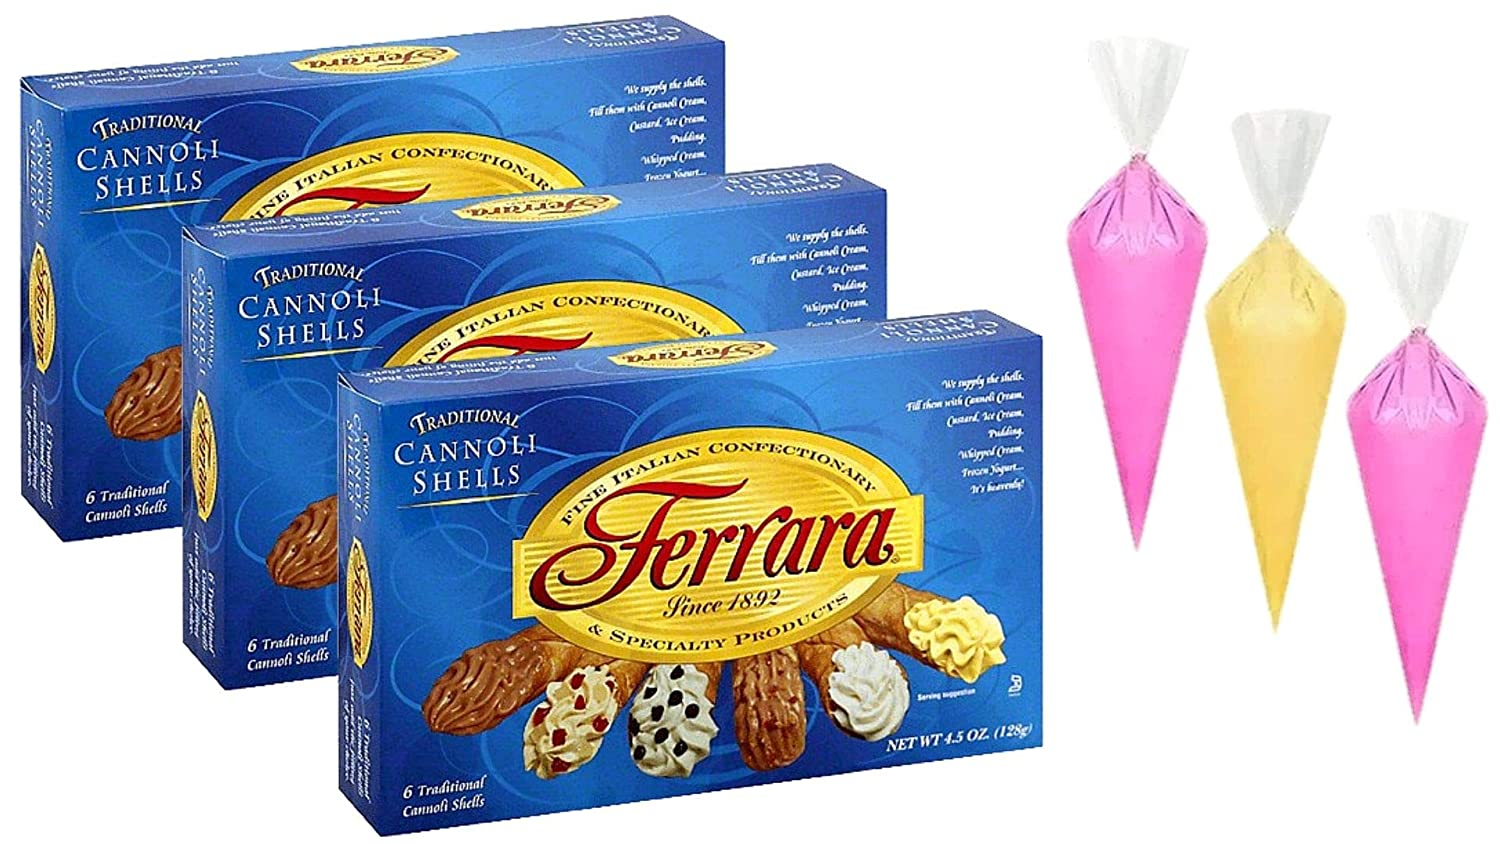 Ferrara - Traditional Purchase Cannoli Shells 4.5 of Pack 3 oz. Max 44% OFF Boxes